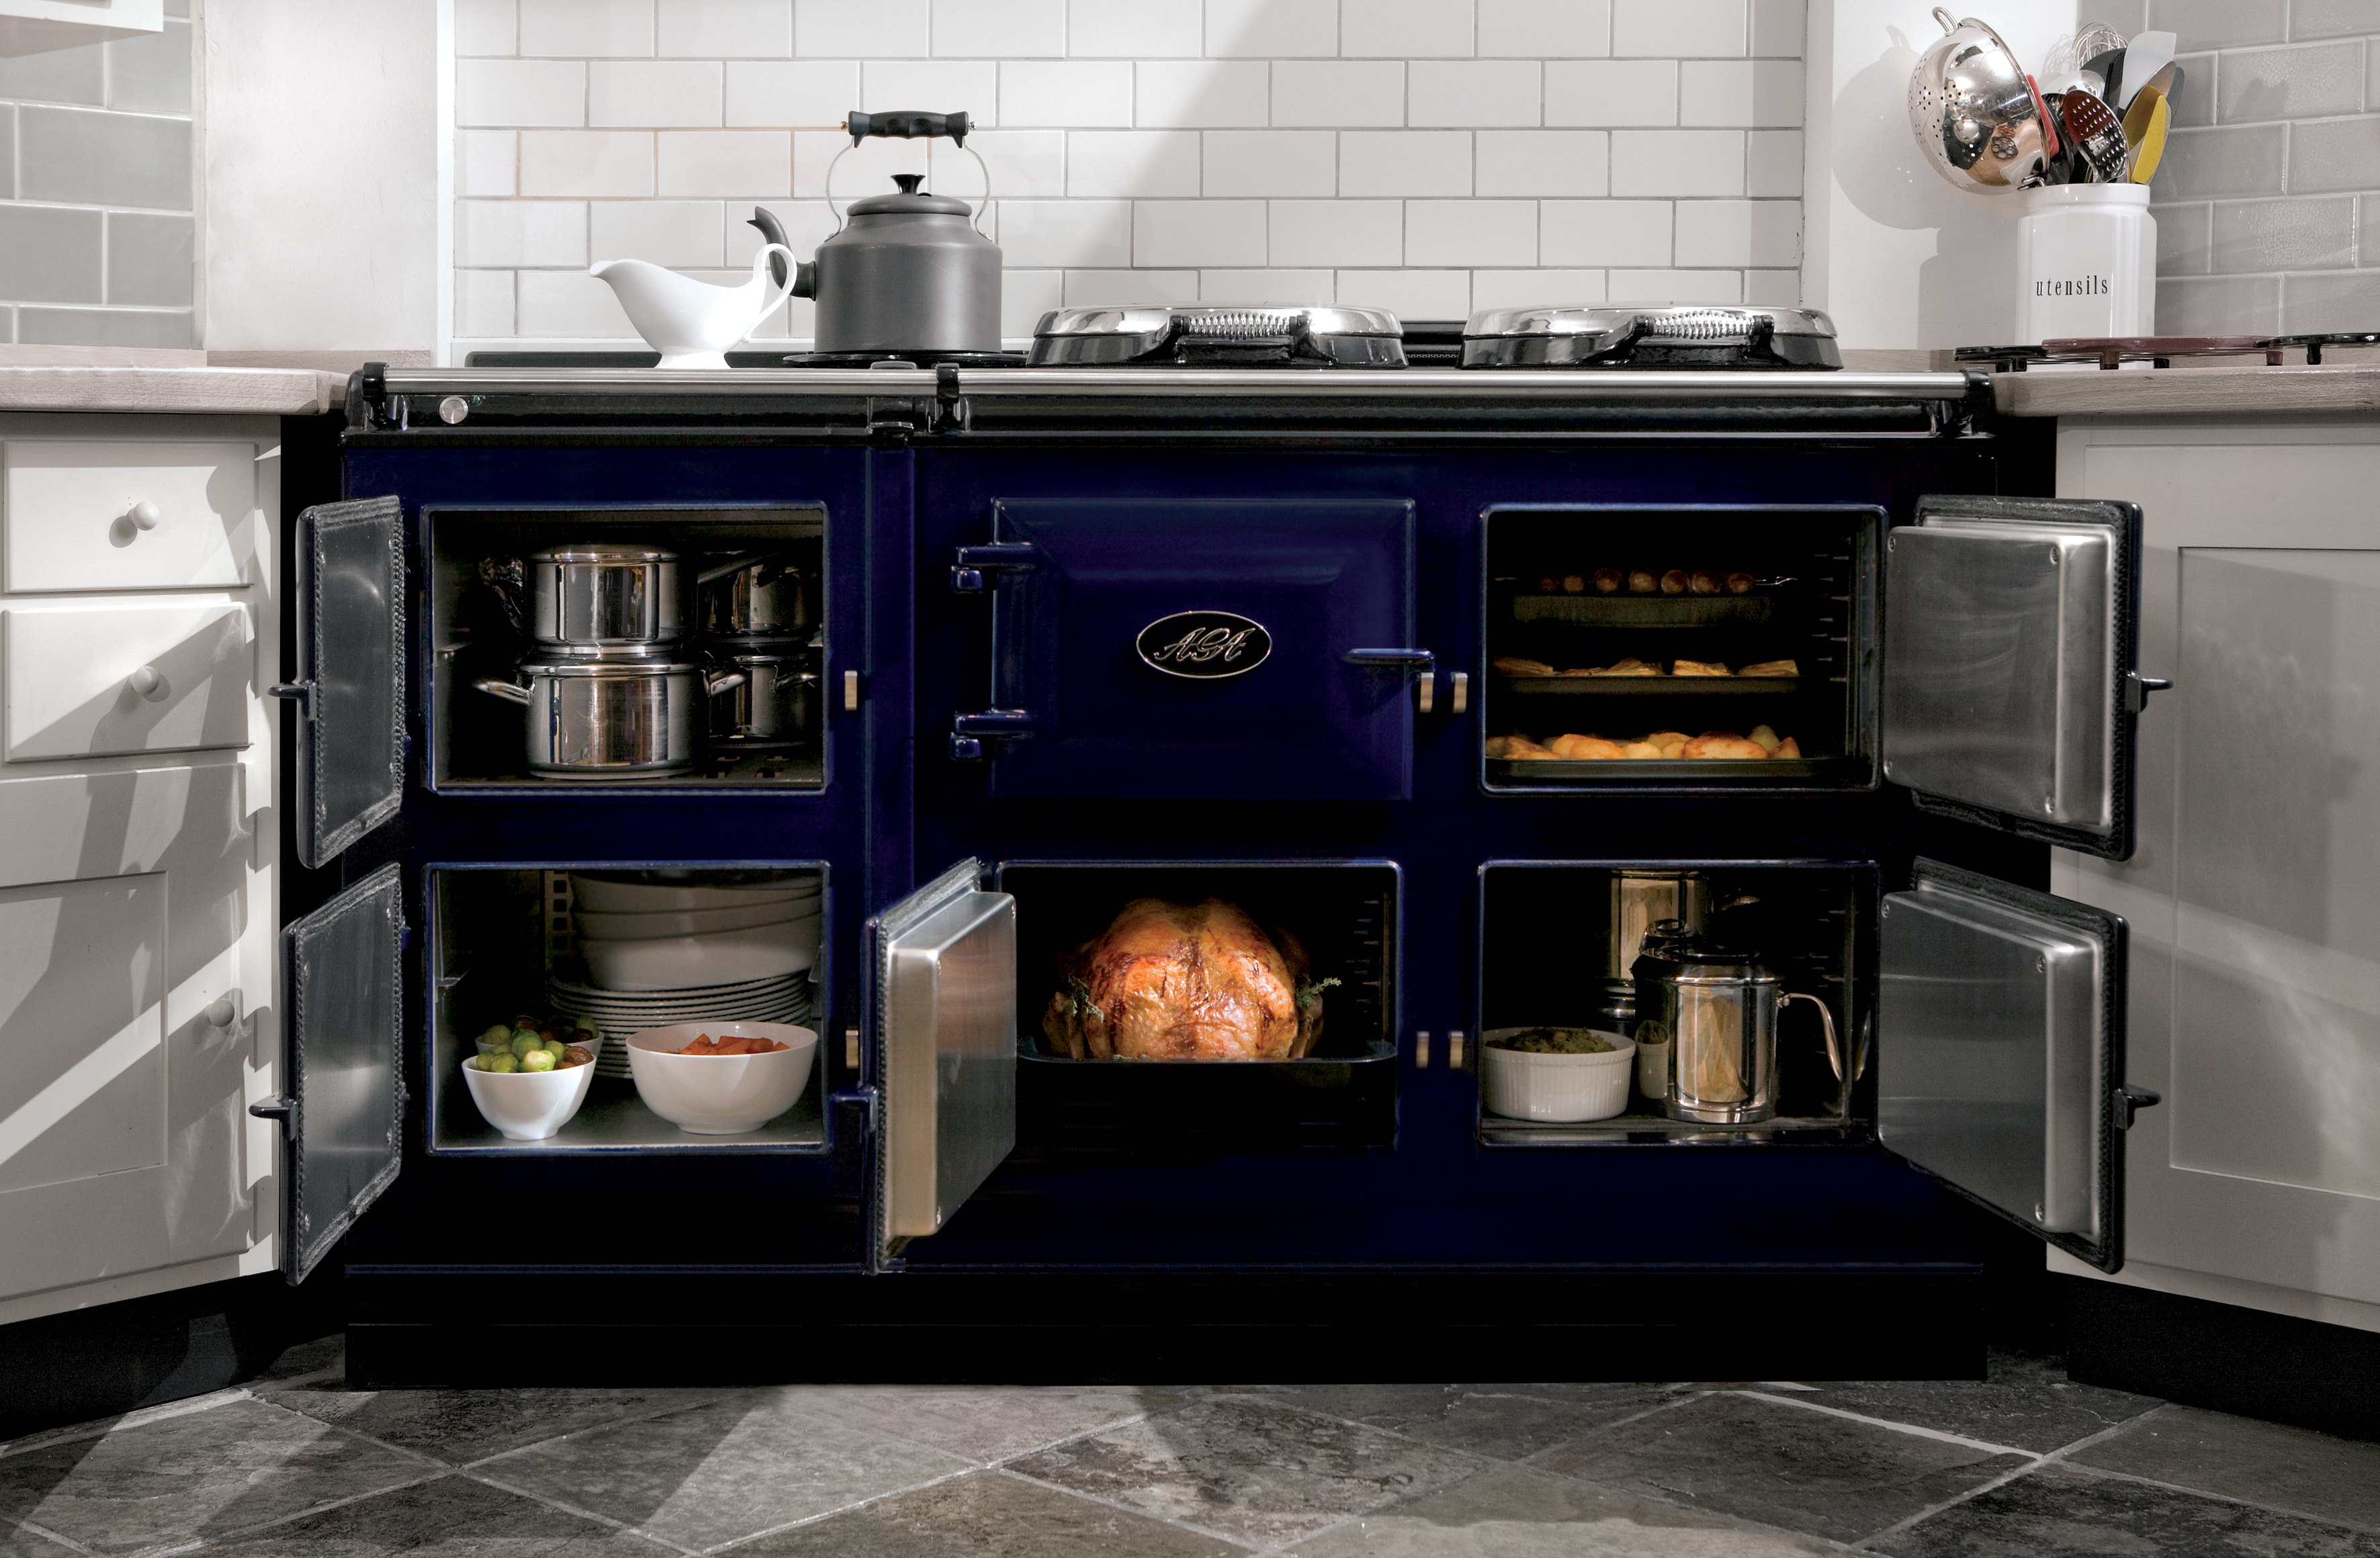 Will America Go Gaga For AGA? The Fancy British Stove Is Poised For ...